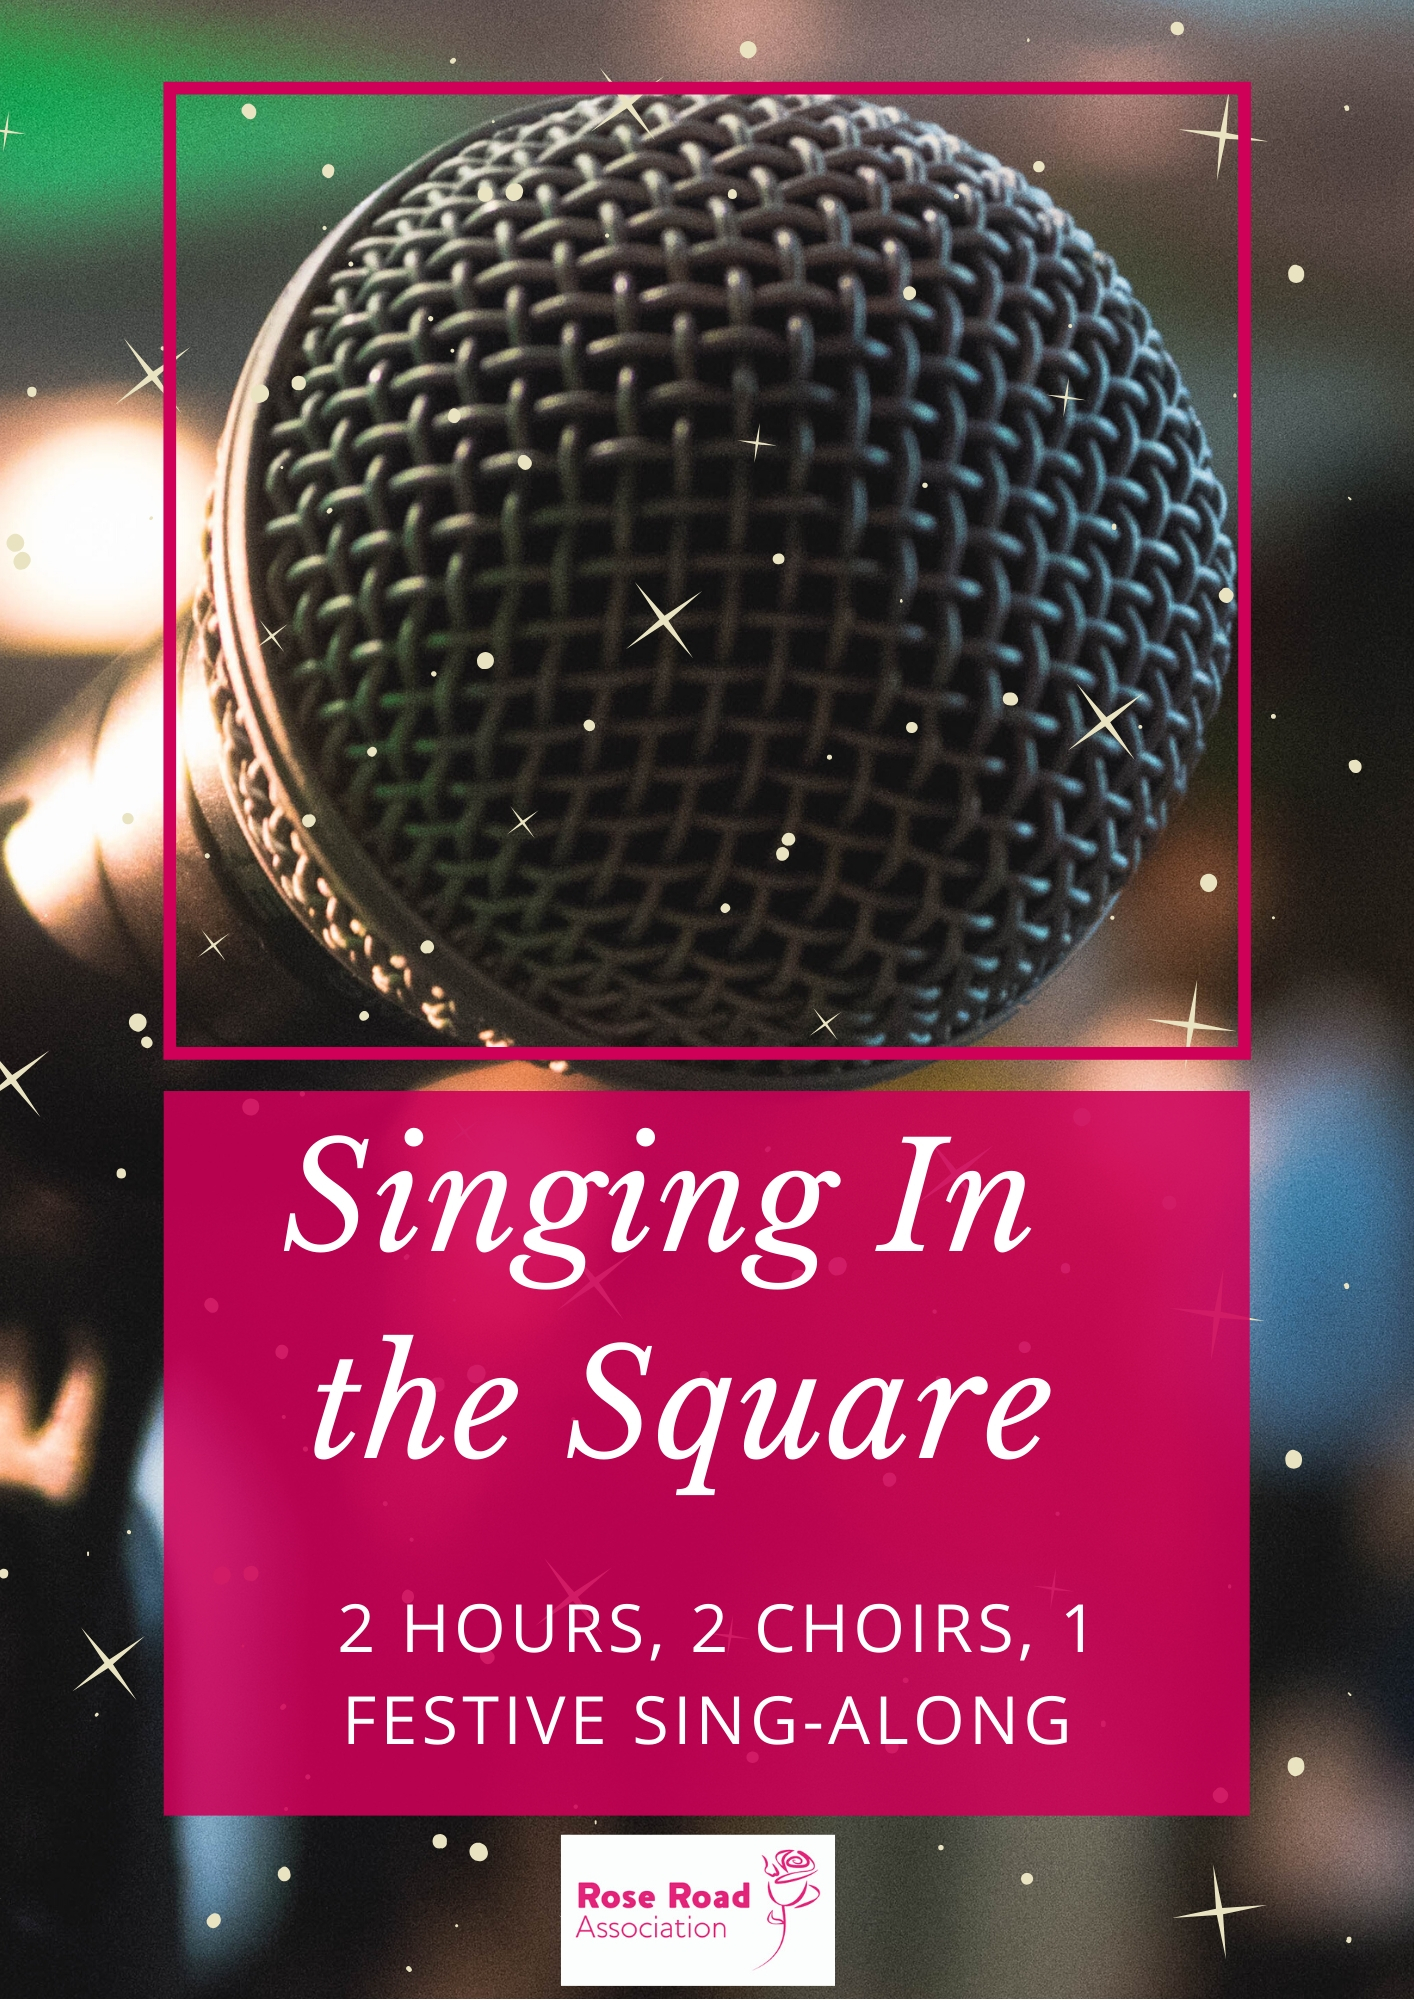 Singing in the Square